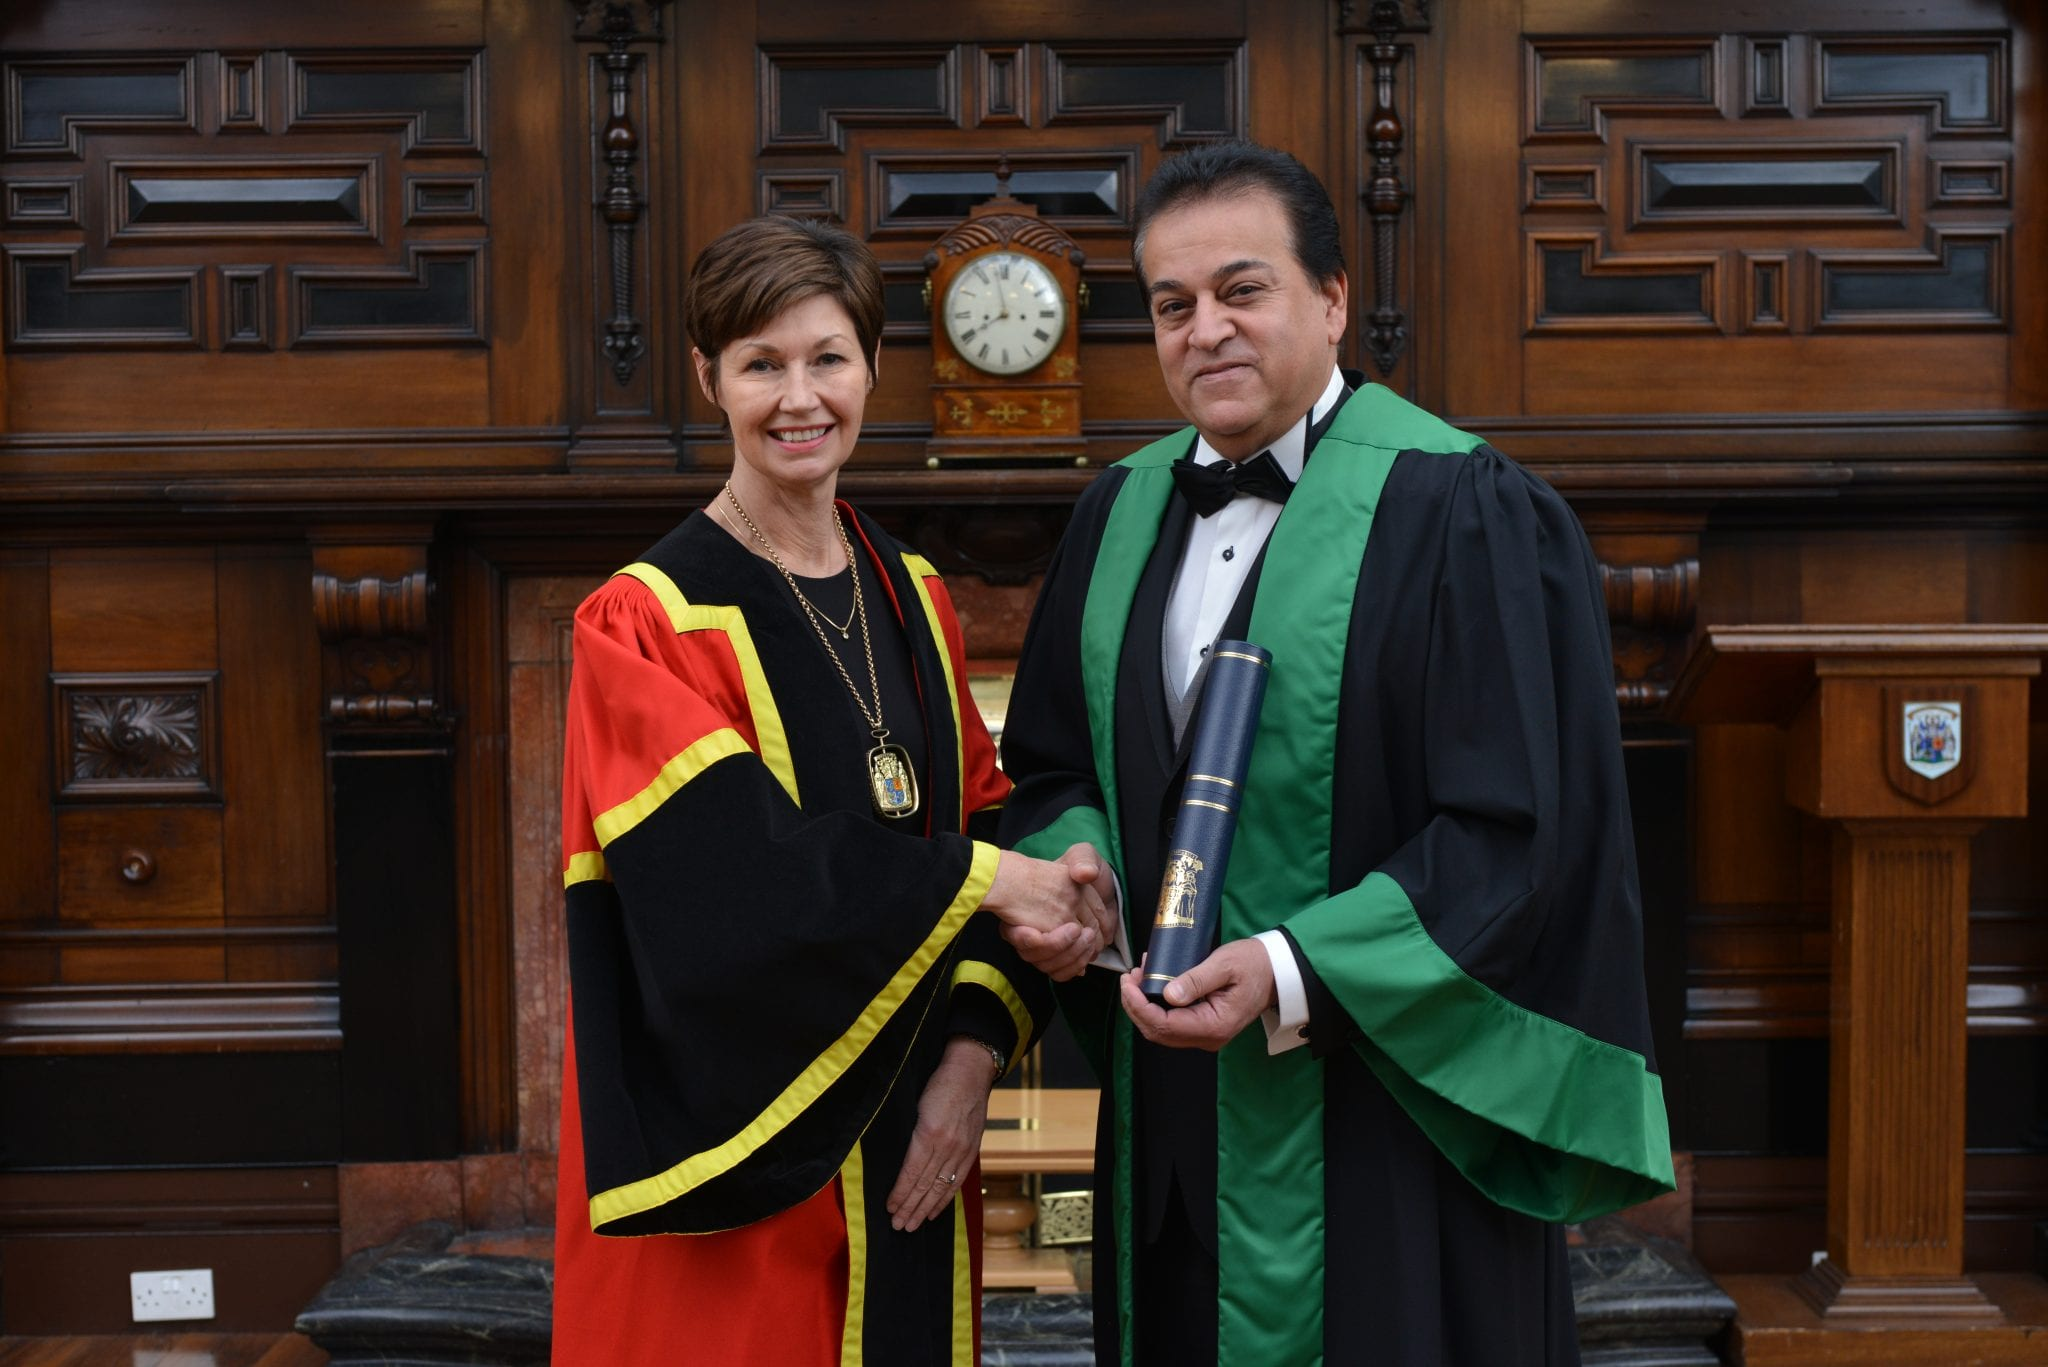 Royal College awards Honorary Fellowships